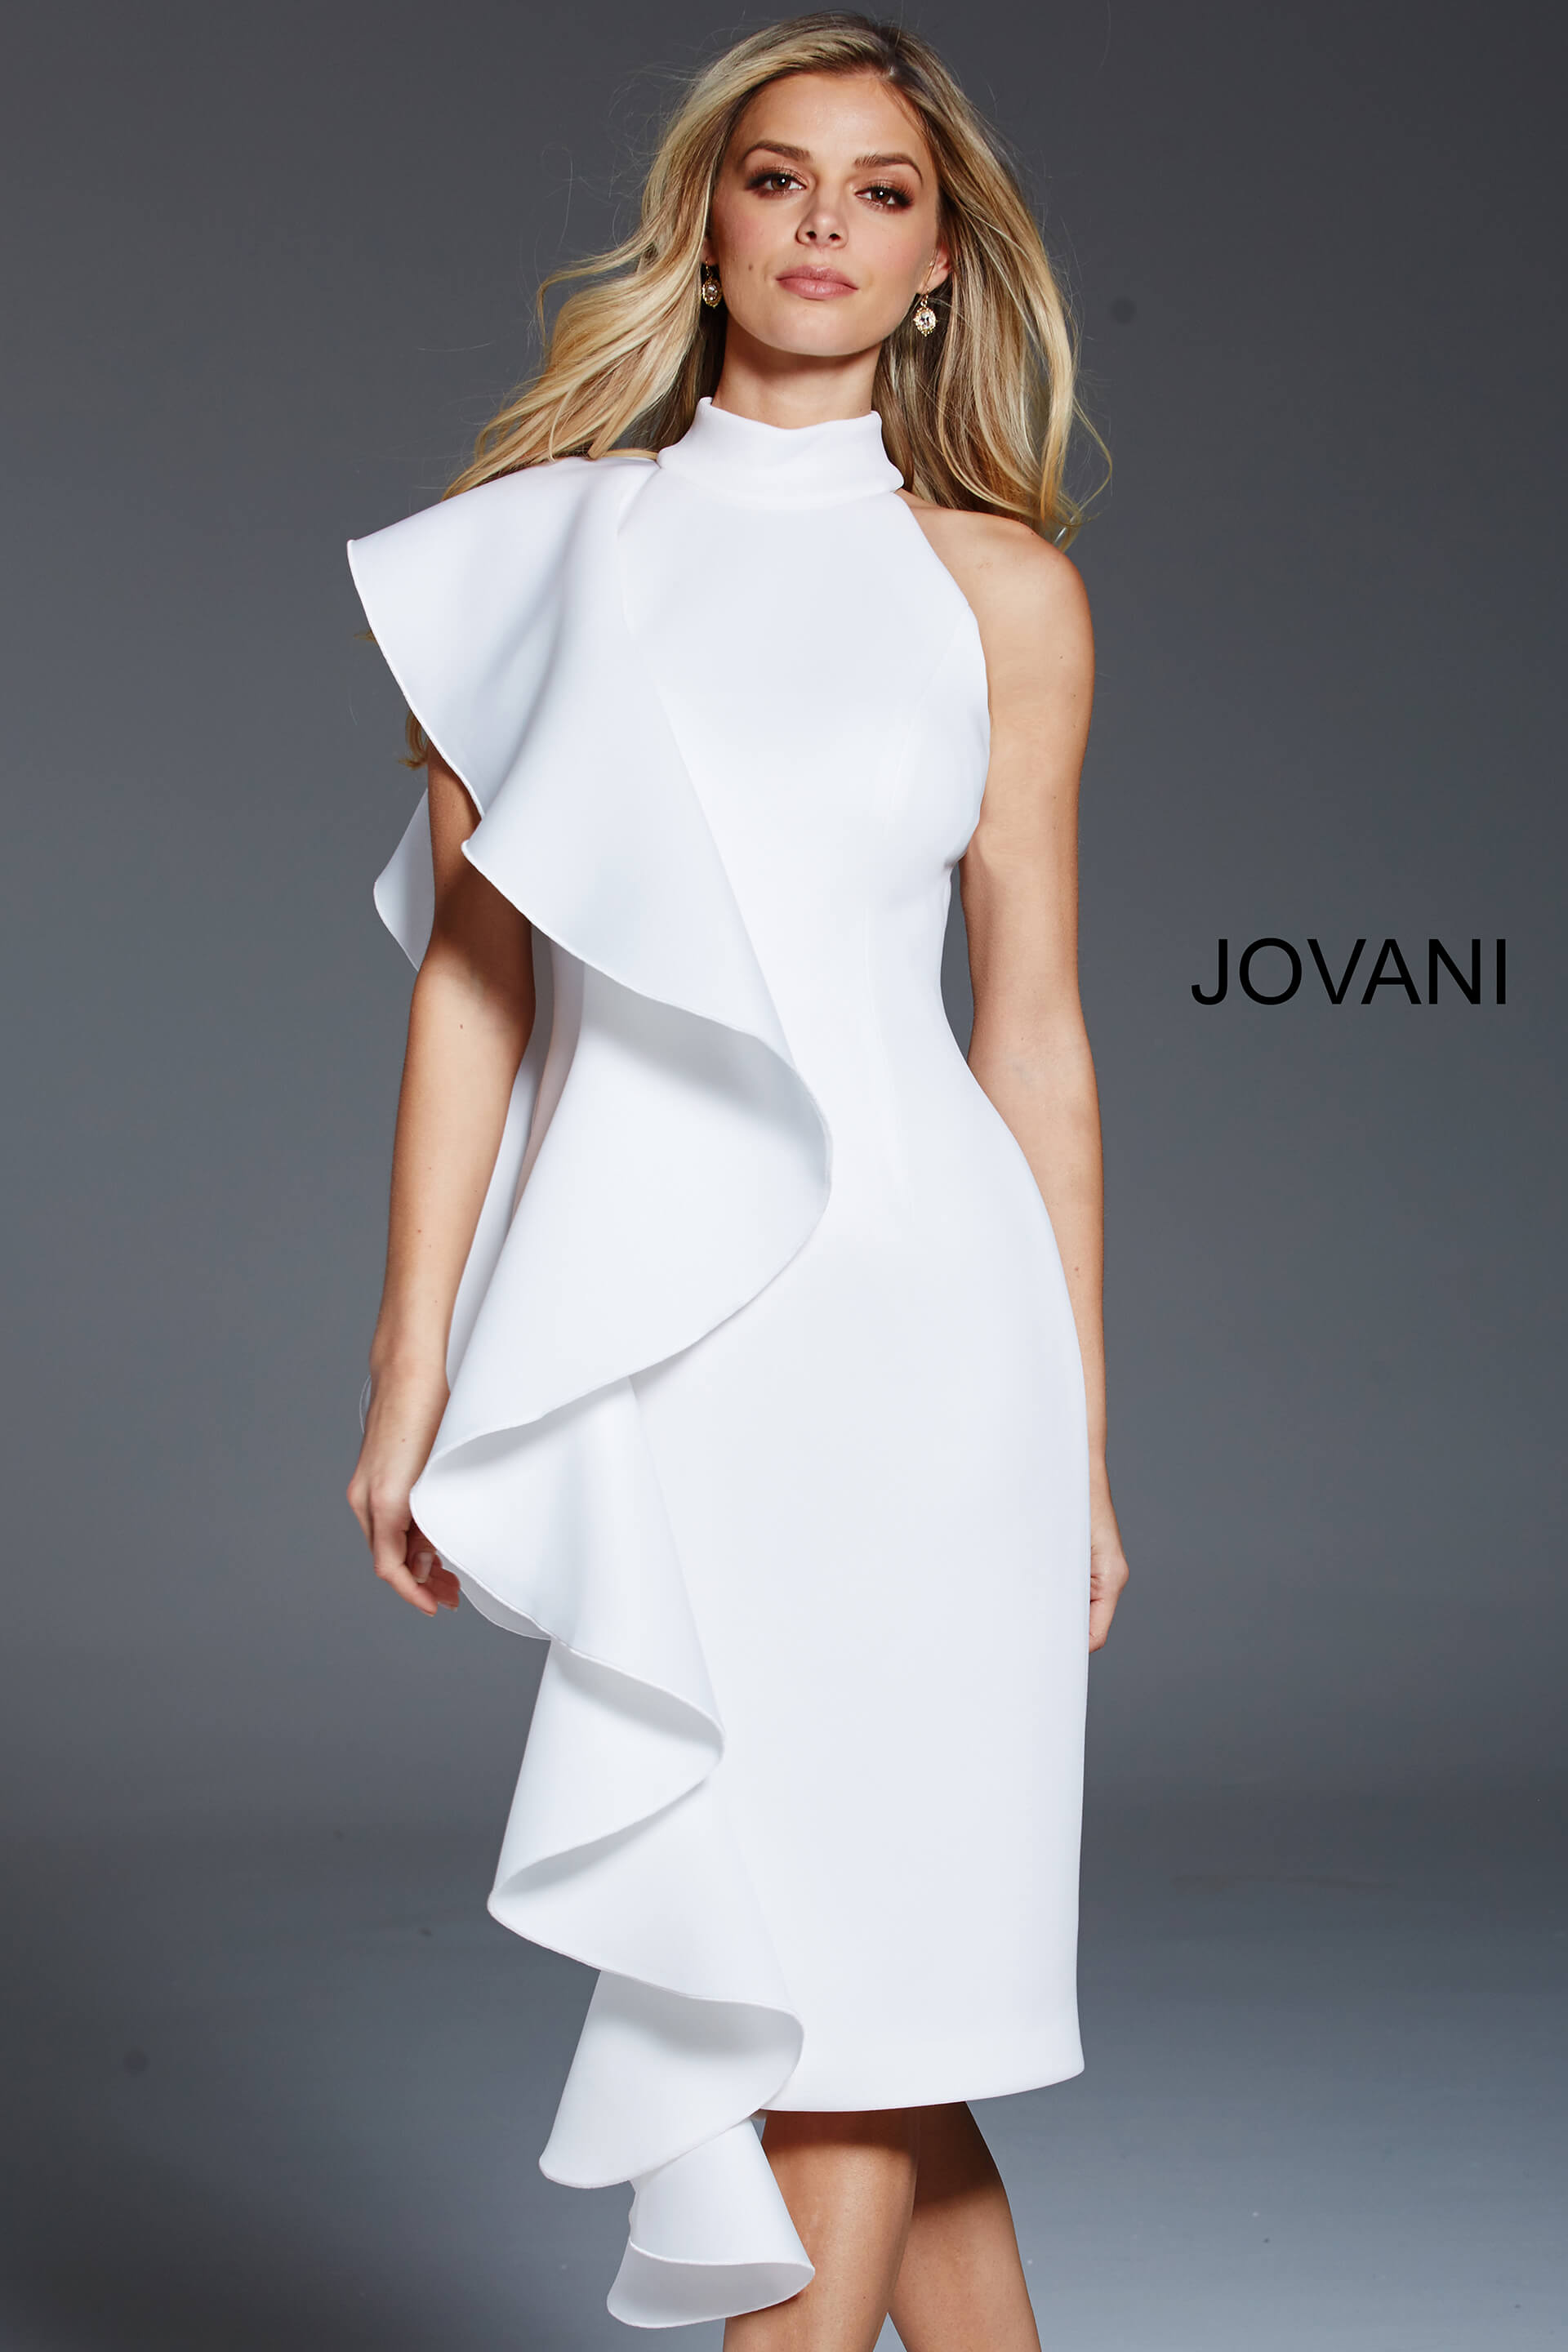 jovani Knee Length High Neckline Ivory Scuba Formal Dress 60297